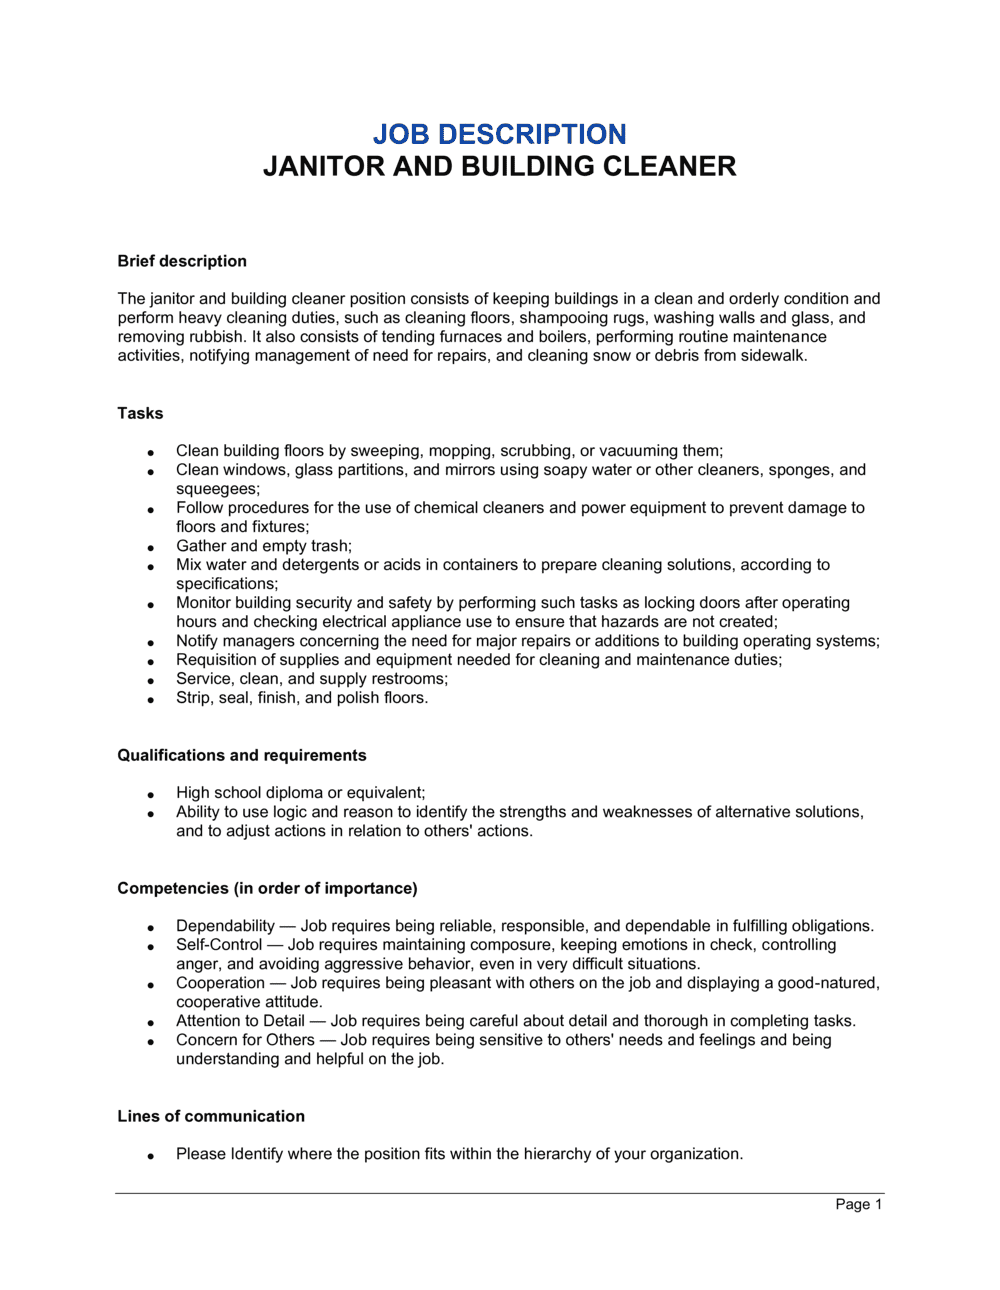 Business-in-a-Box's Janitor and Building Cleaner Job Description Template